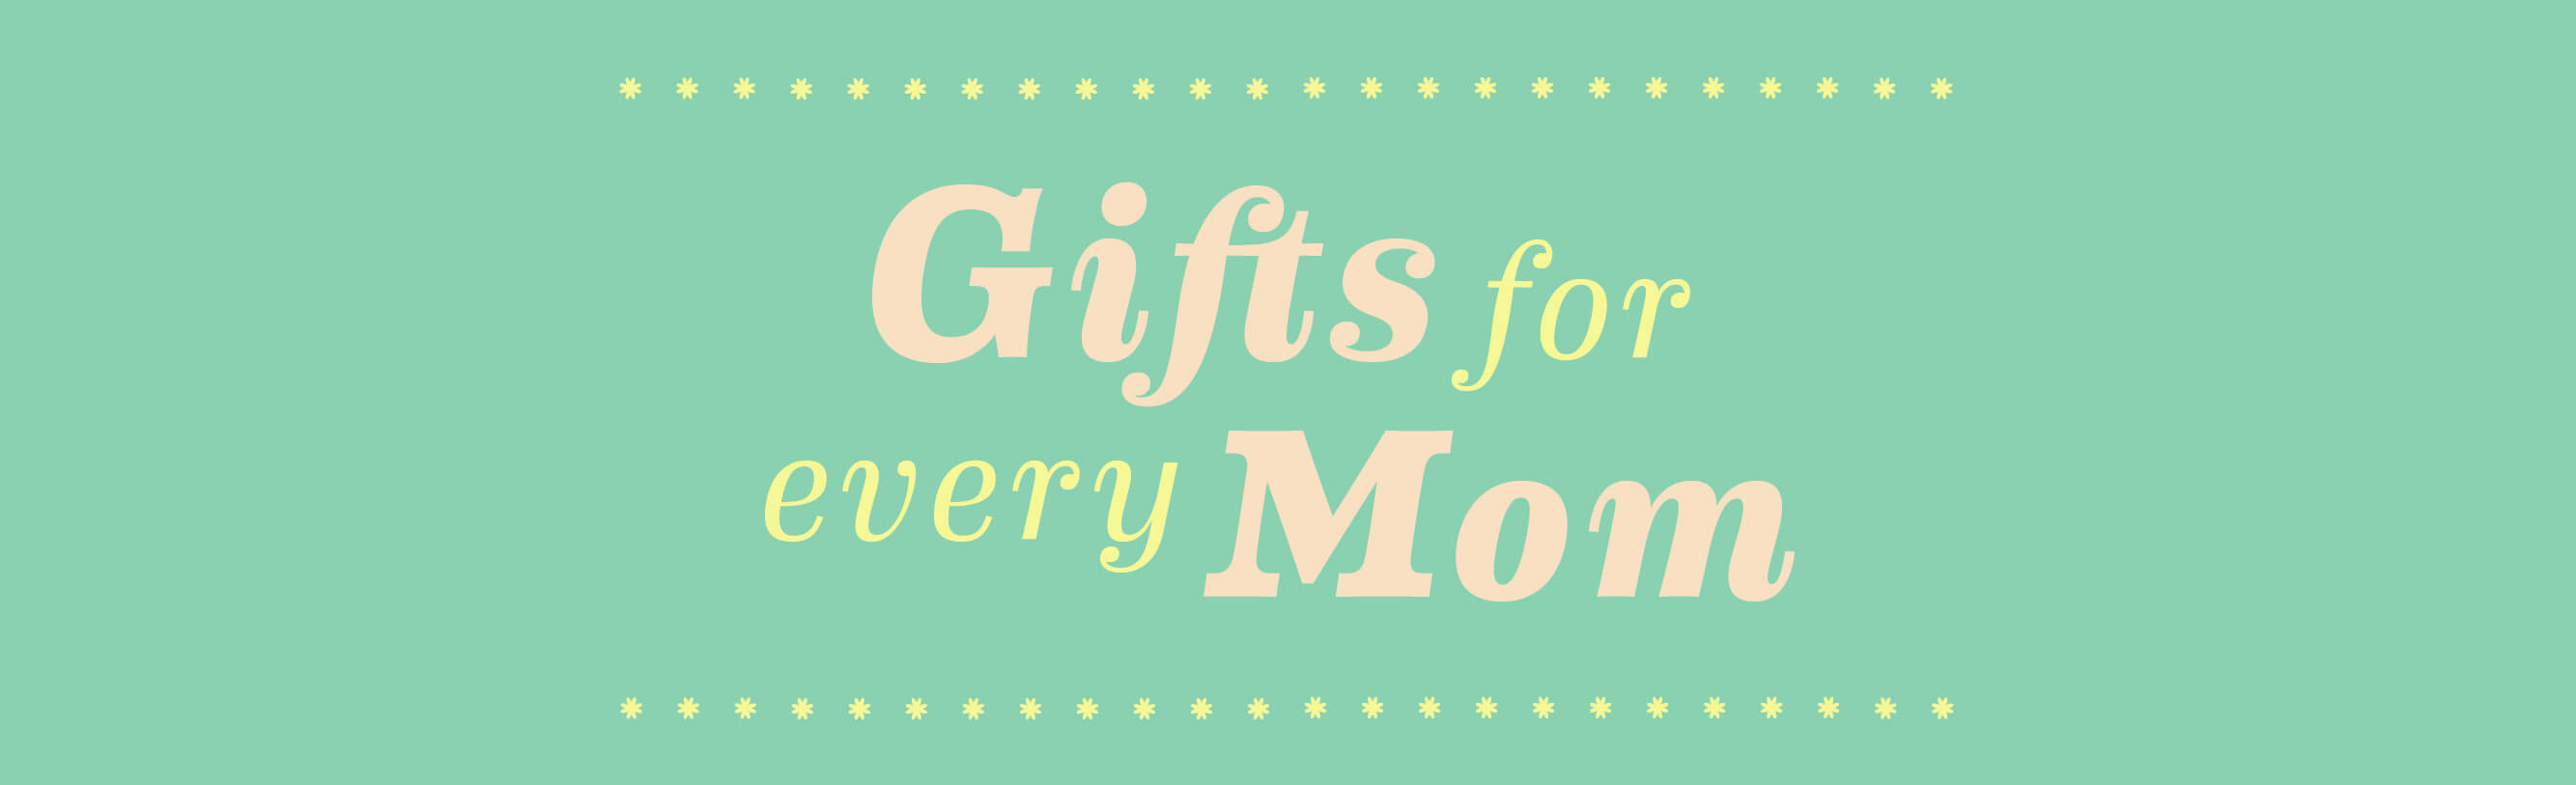 Gifts For Every Mom Banner